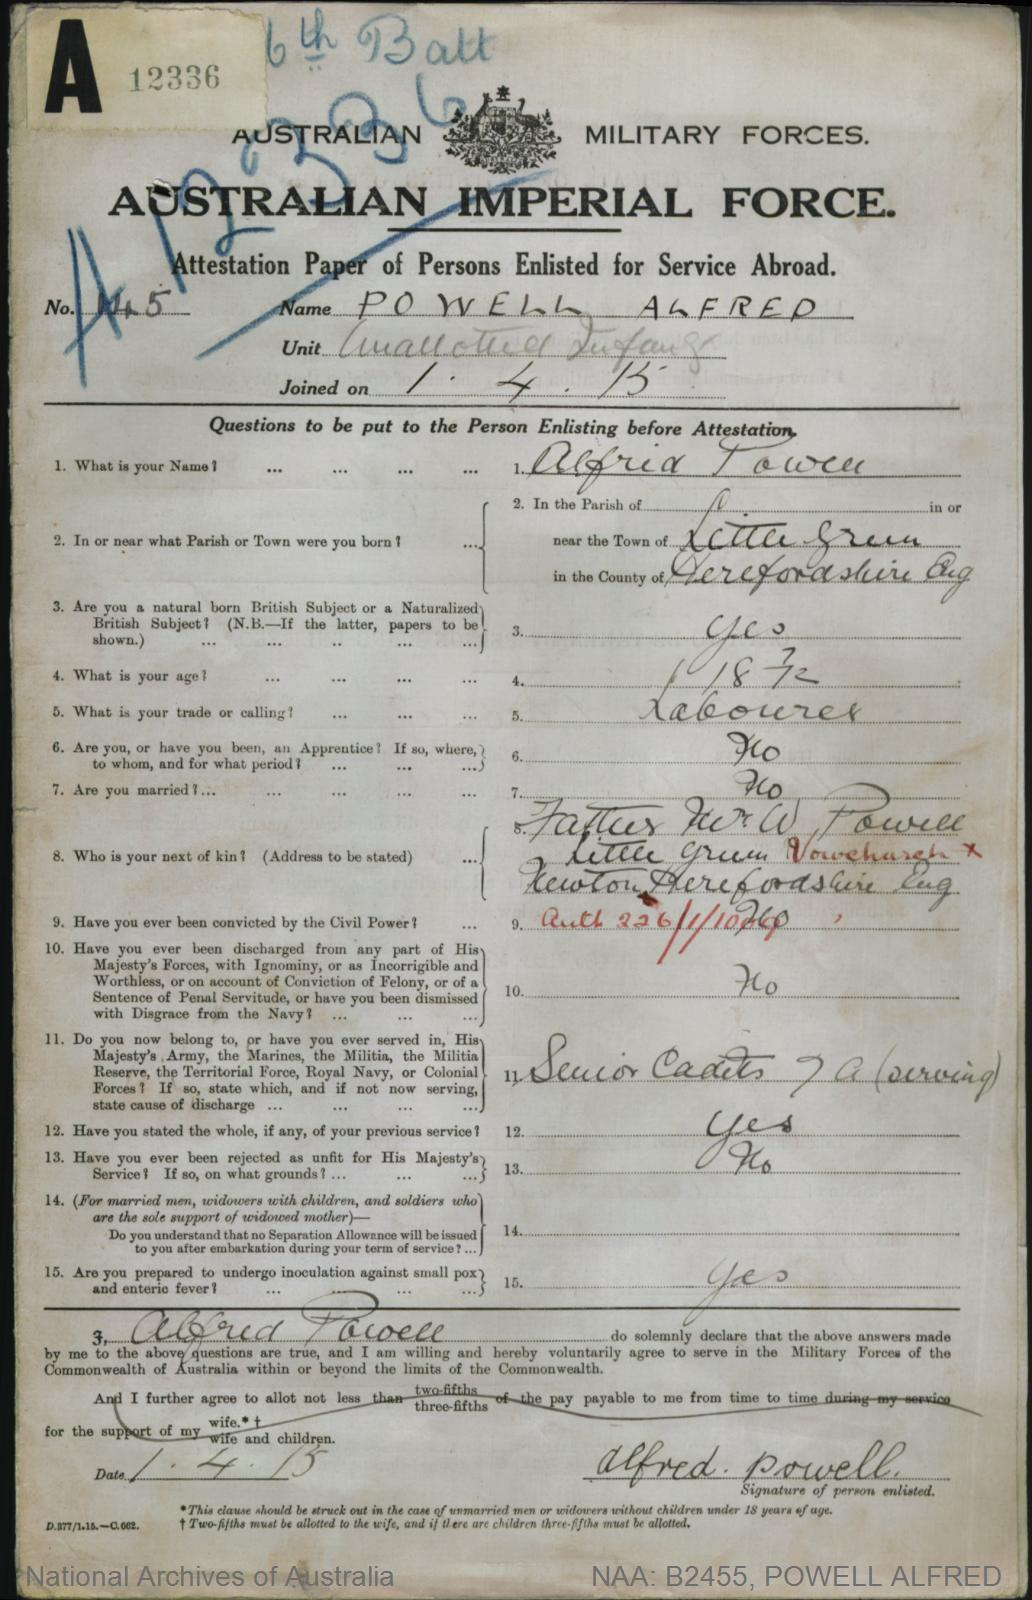 POWELL Alfred : Service Number - 145 : Place of Birth - Little Green England : Place of Enlistment - Brisbane QLD : Next of Kin - (Father) POWELL W